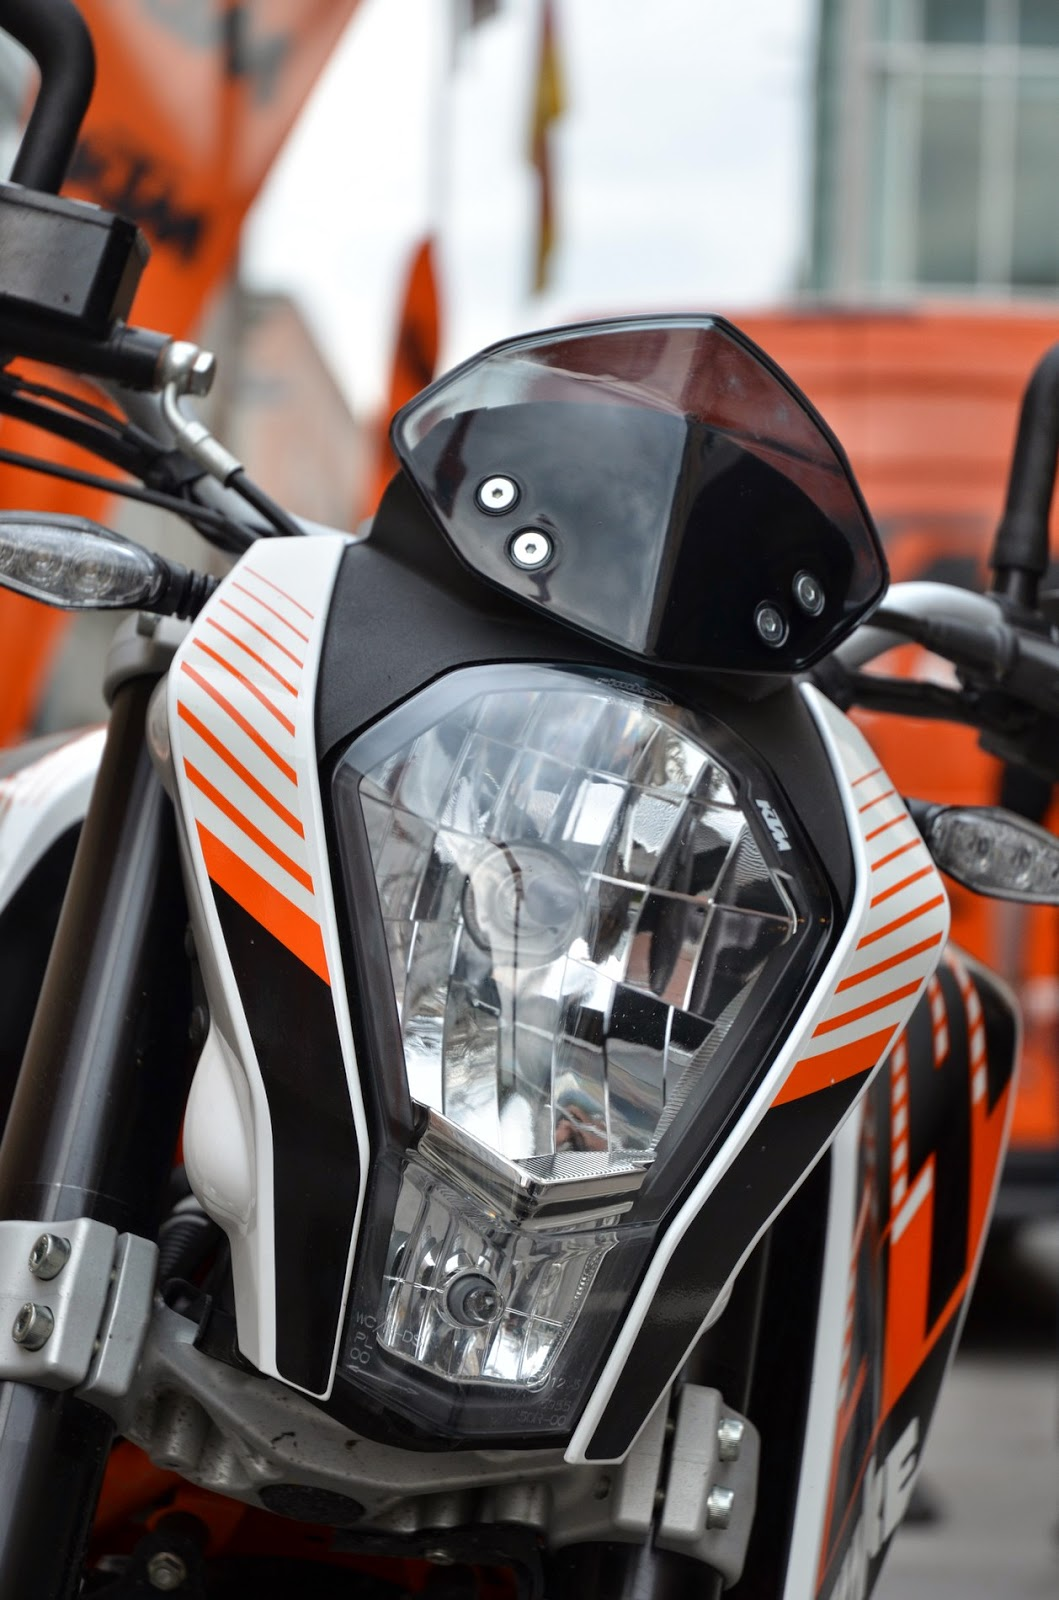 ktm duke 390 usa price, review and specs